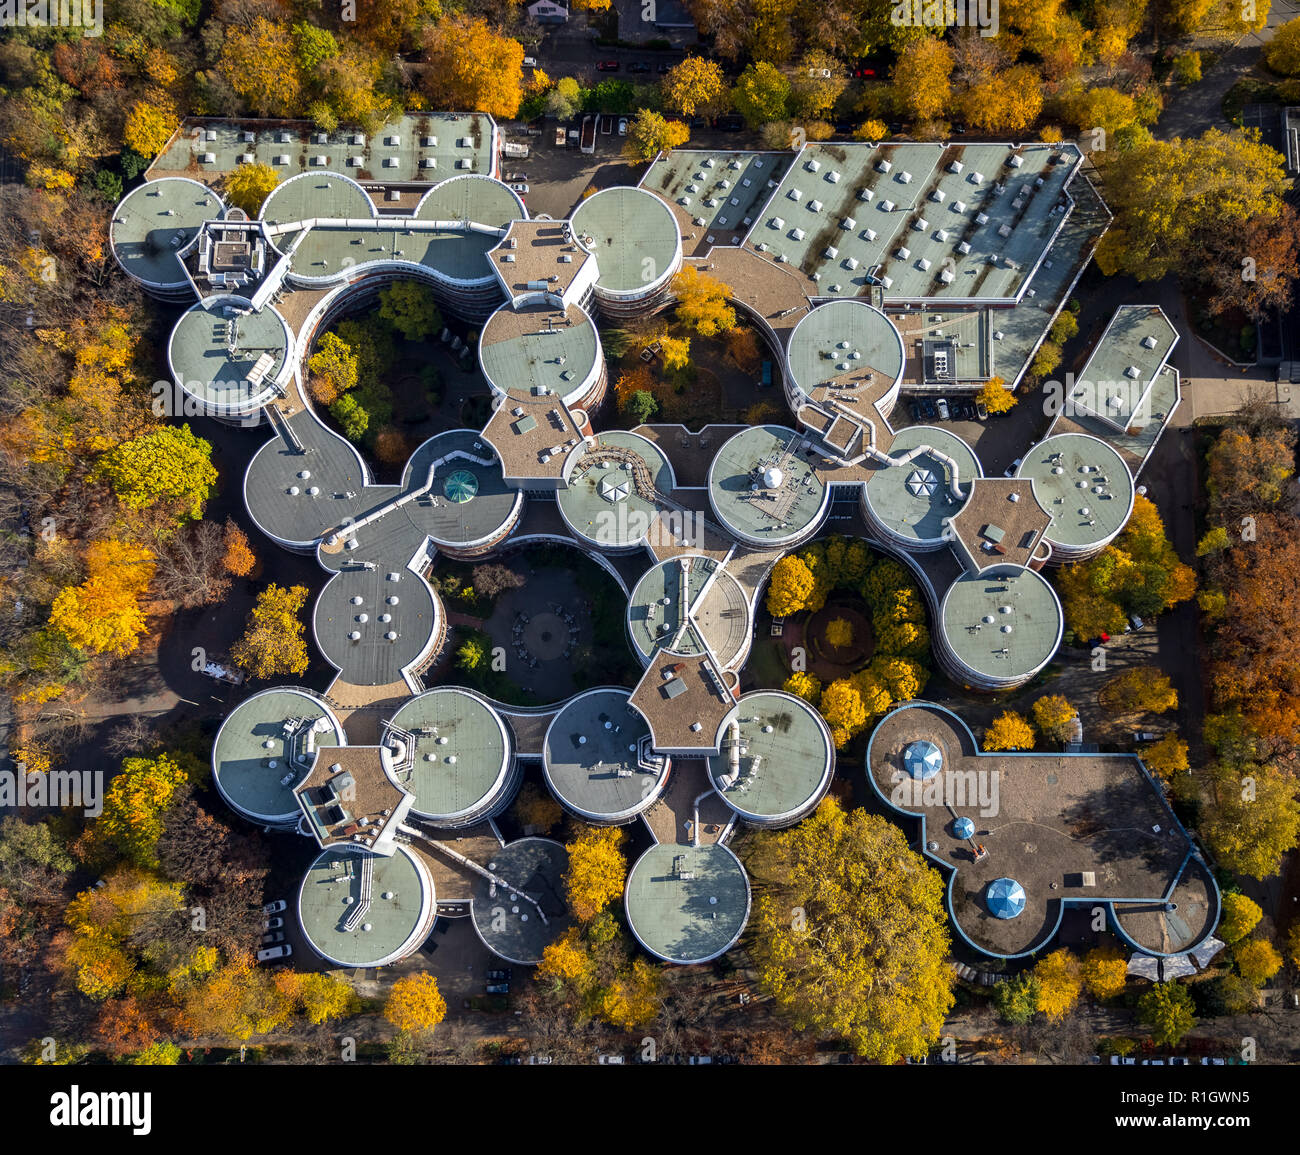 Aerial View, University of Duisburg-Essen - AG Horn-von Hoegen, University of Duisburg-Essen Physics of Transport and Traffic, ZBT GmbH Center for Fue - Stock Image